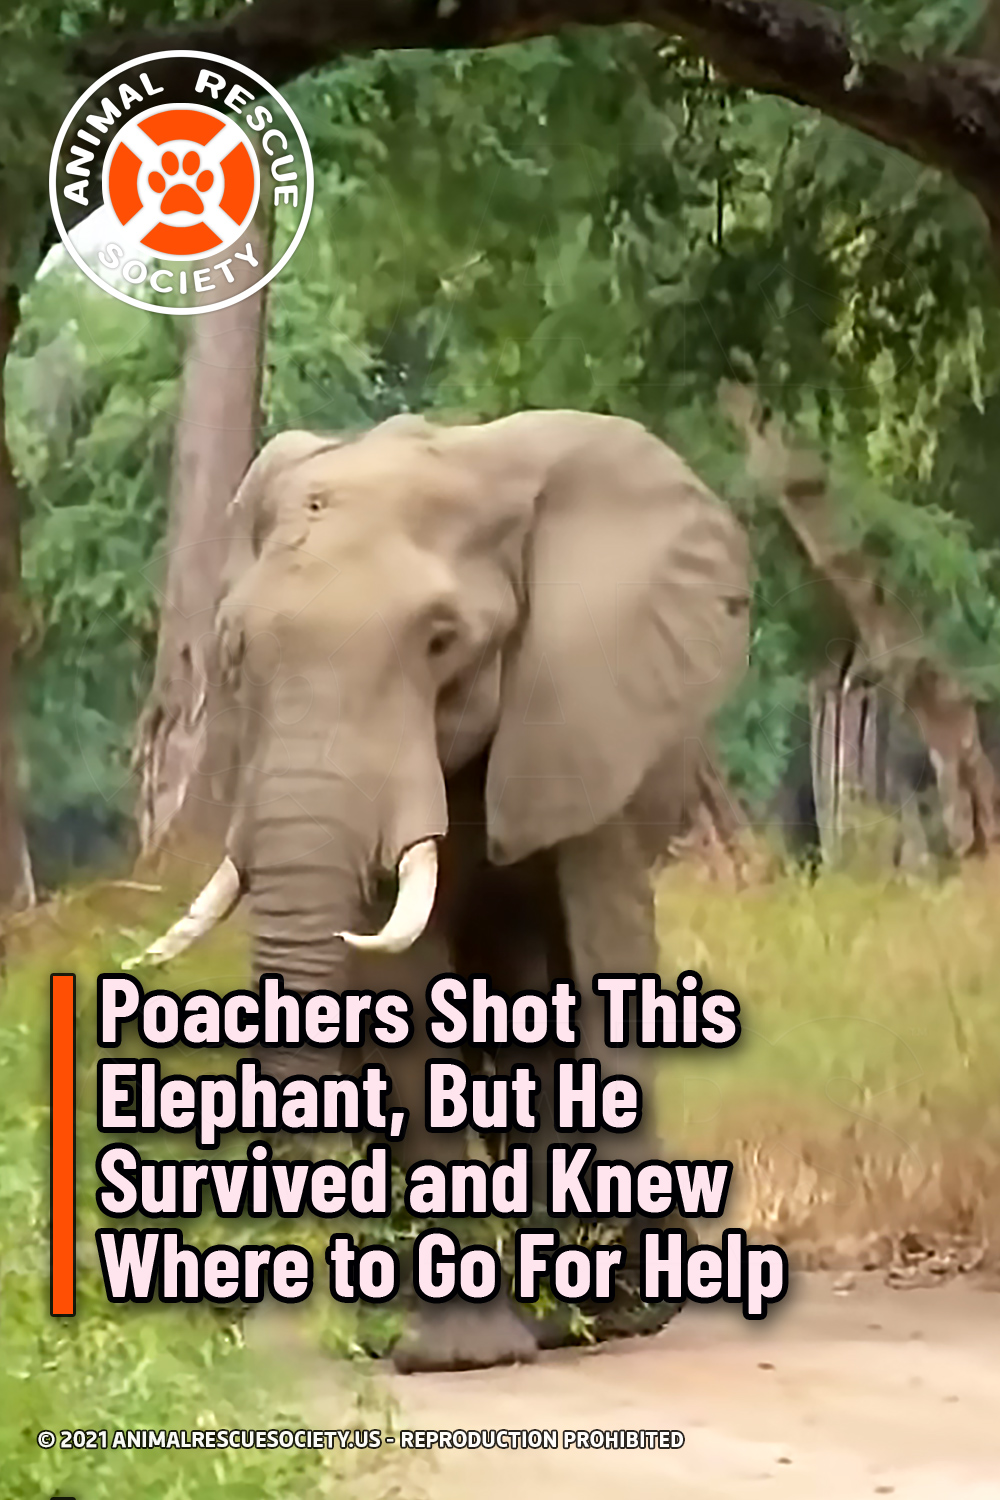 Poachers Shot This Elephant, But He Survived and Knew Where to Go For Help